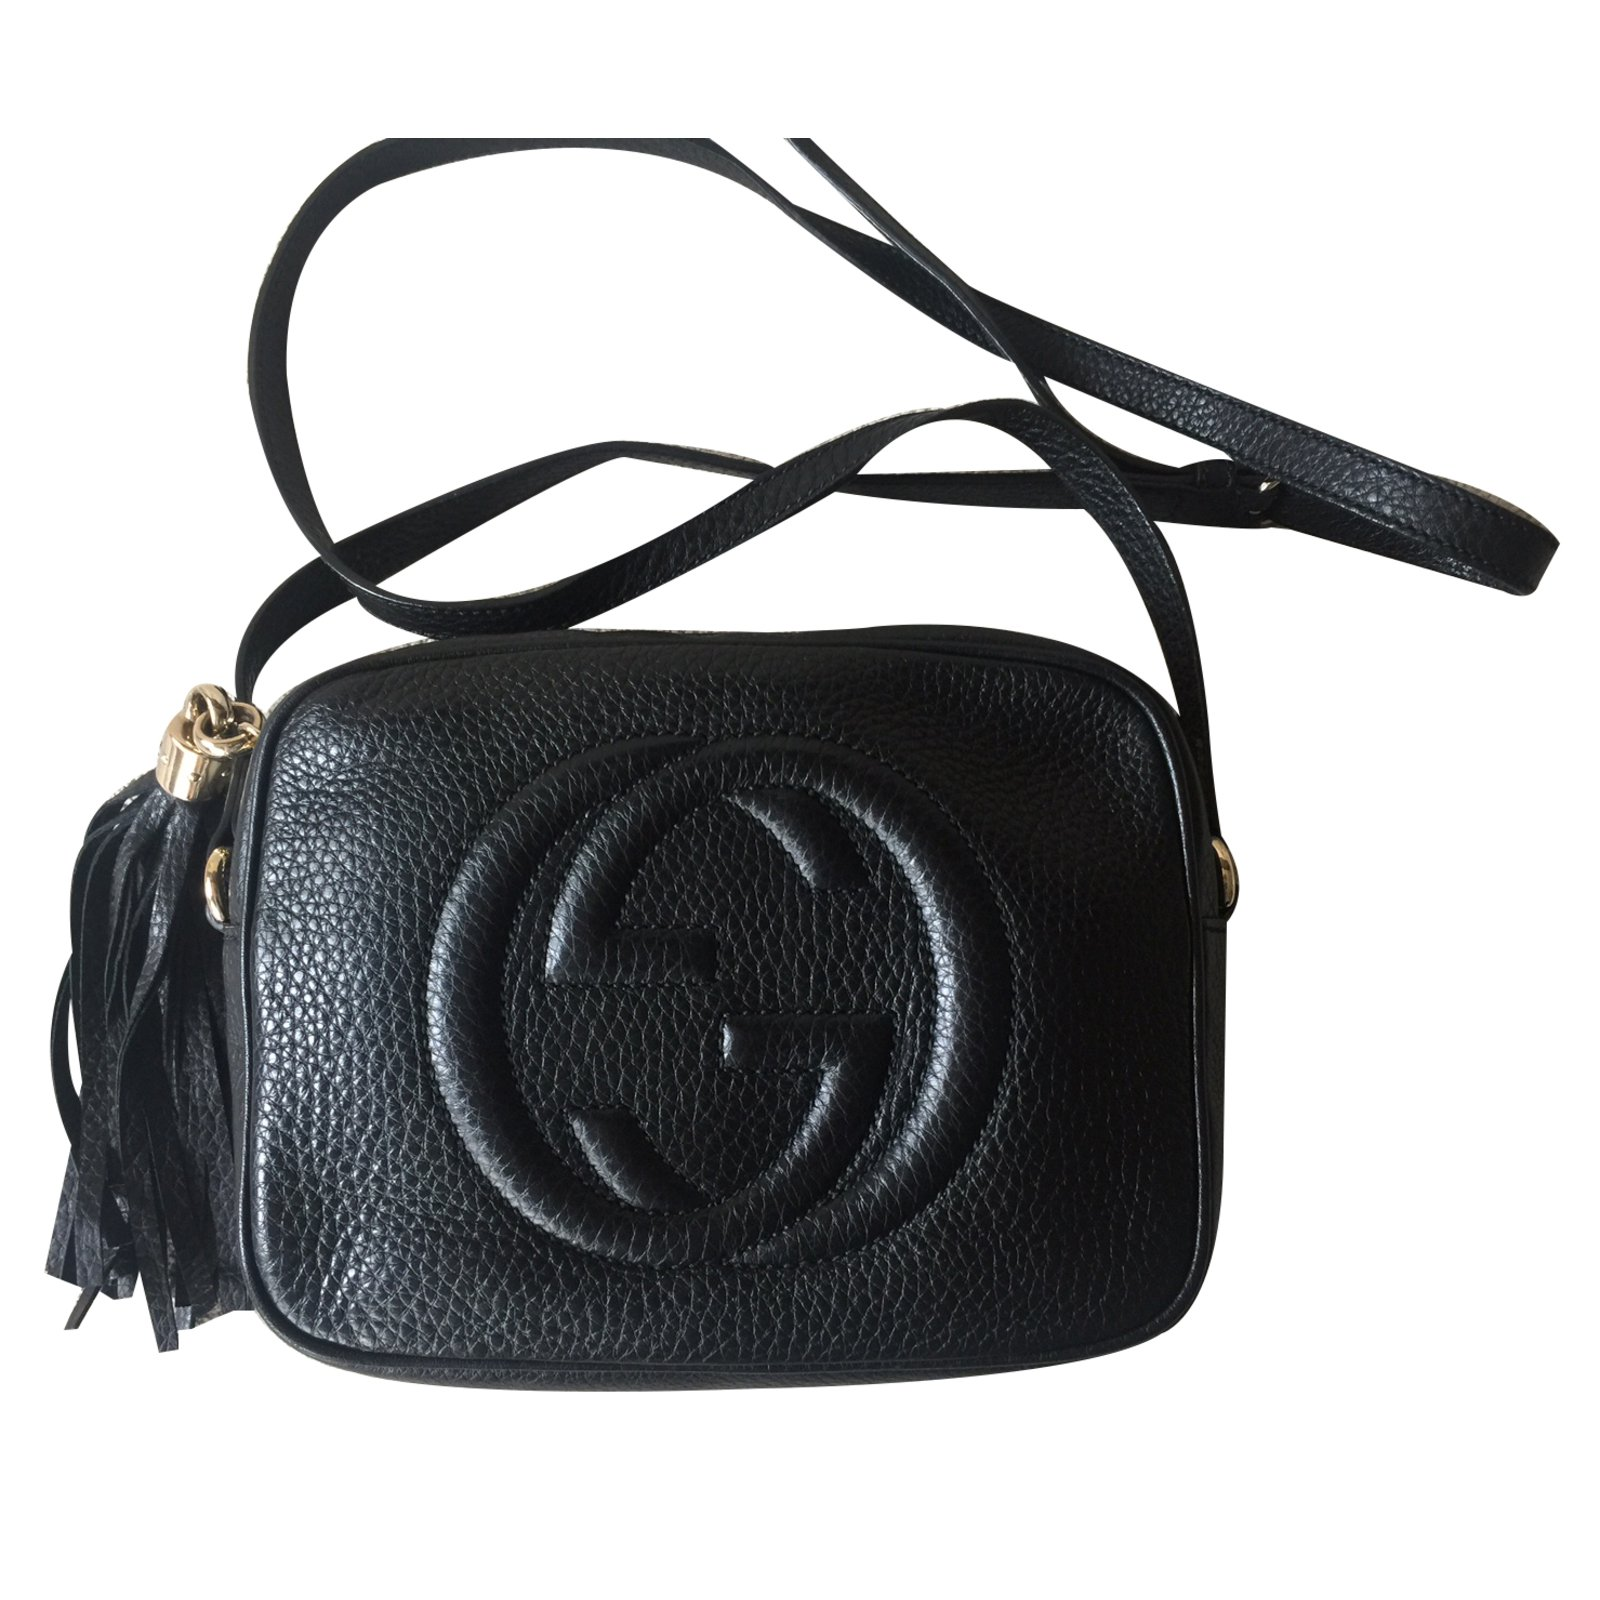 754a890735e6 Gucci GUCCI BLACK SOHO DISCO Handbags Leather Black ref.32844 - Joli ...